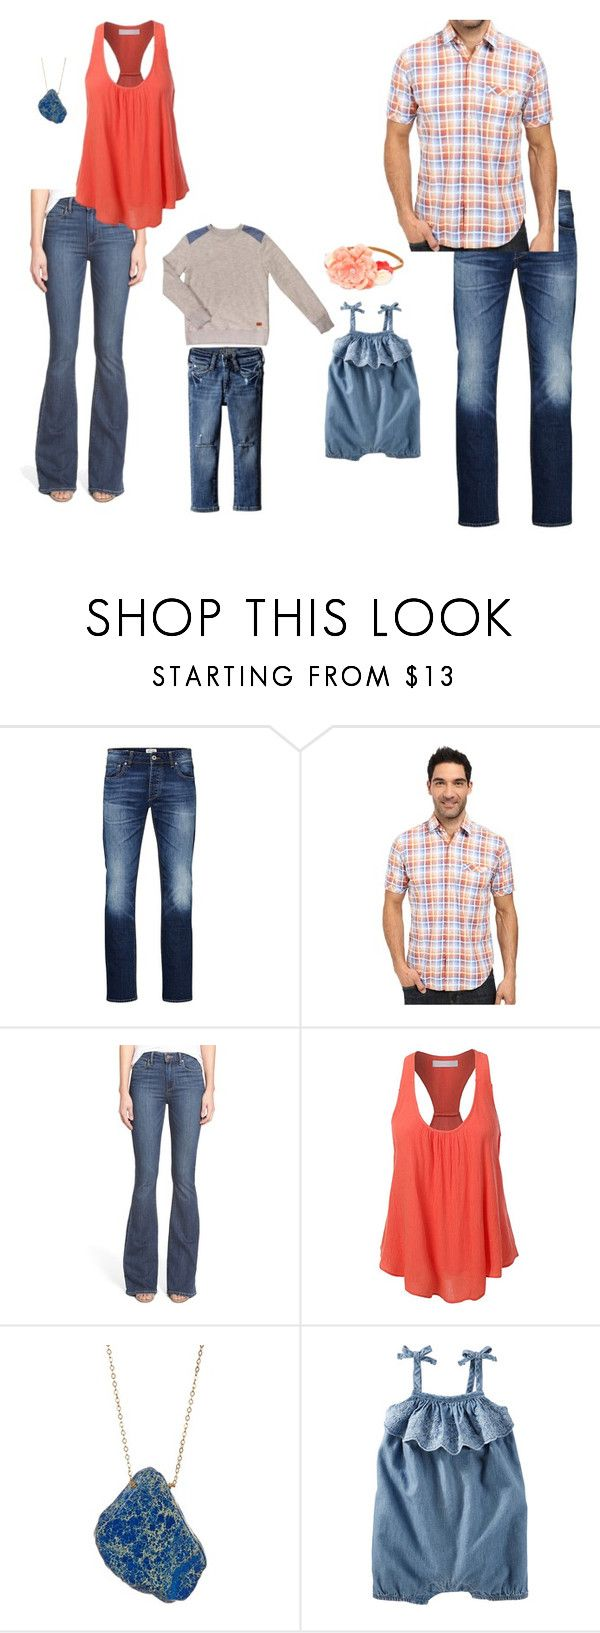 """Becci Ravera Photography"" by becci-ravera on Polyvore featuring DL1961 Premium Denim, 7 For All Mankind, Jack & Jones, James Campbell, Paige Denim, Ami Sanzuri and The Children's Place"